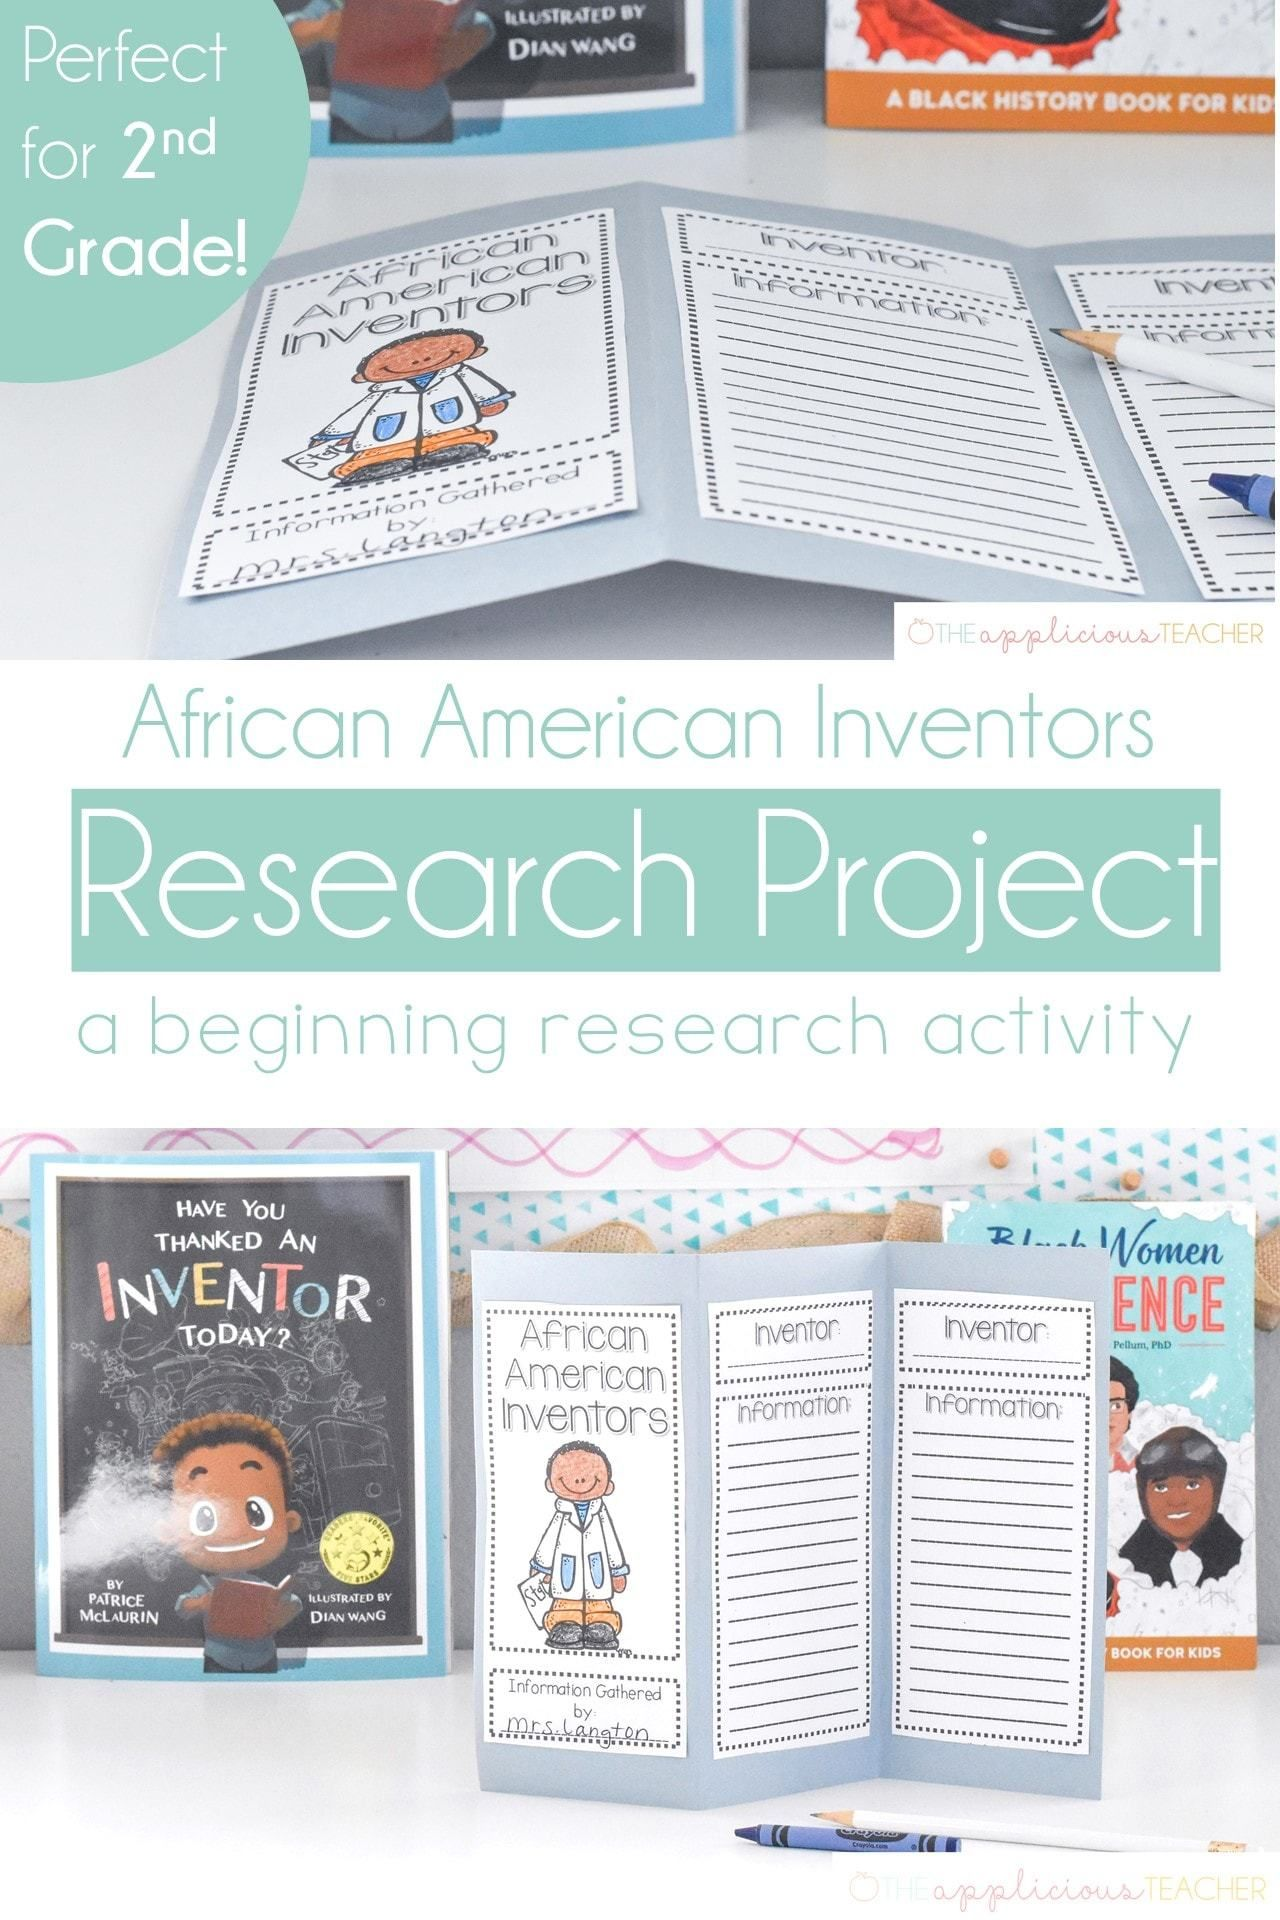 African American Inventors Research Project For 2nd Grade